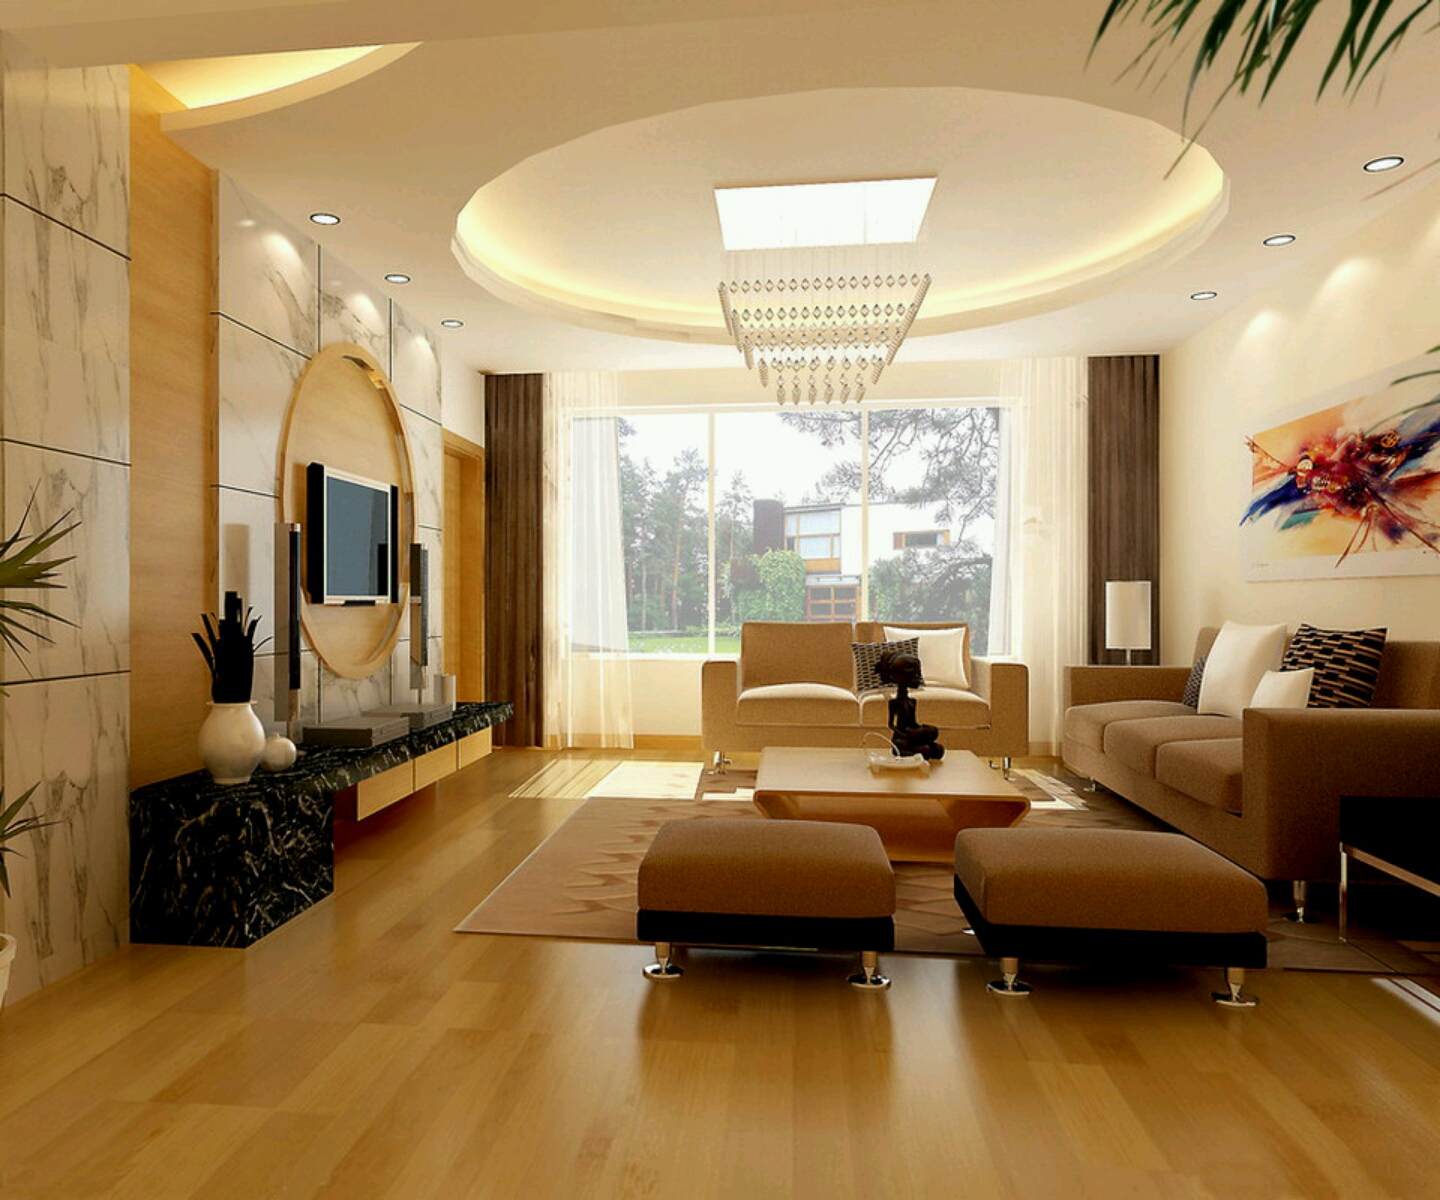 Modern interior decoration living rooms ceiling designs for Home decor ideas for living room